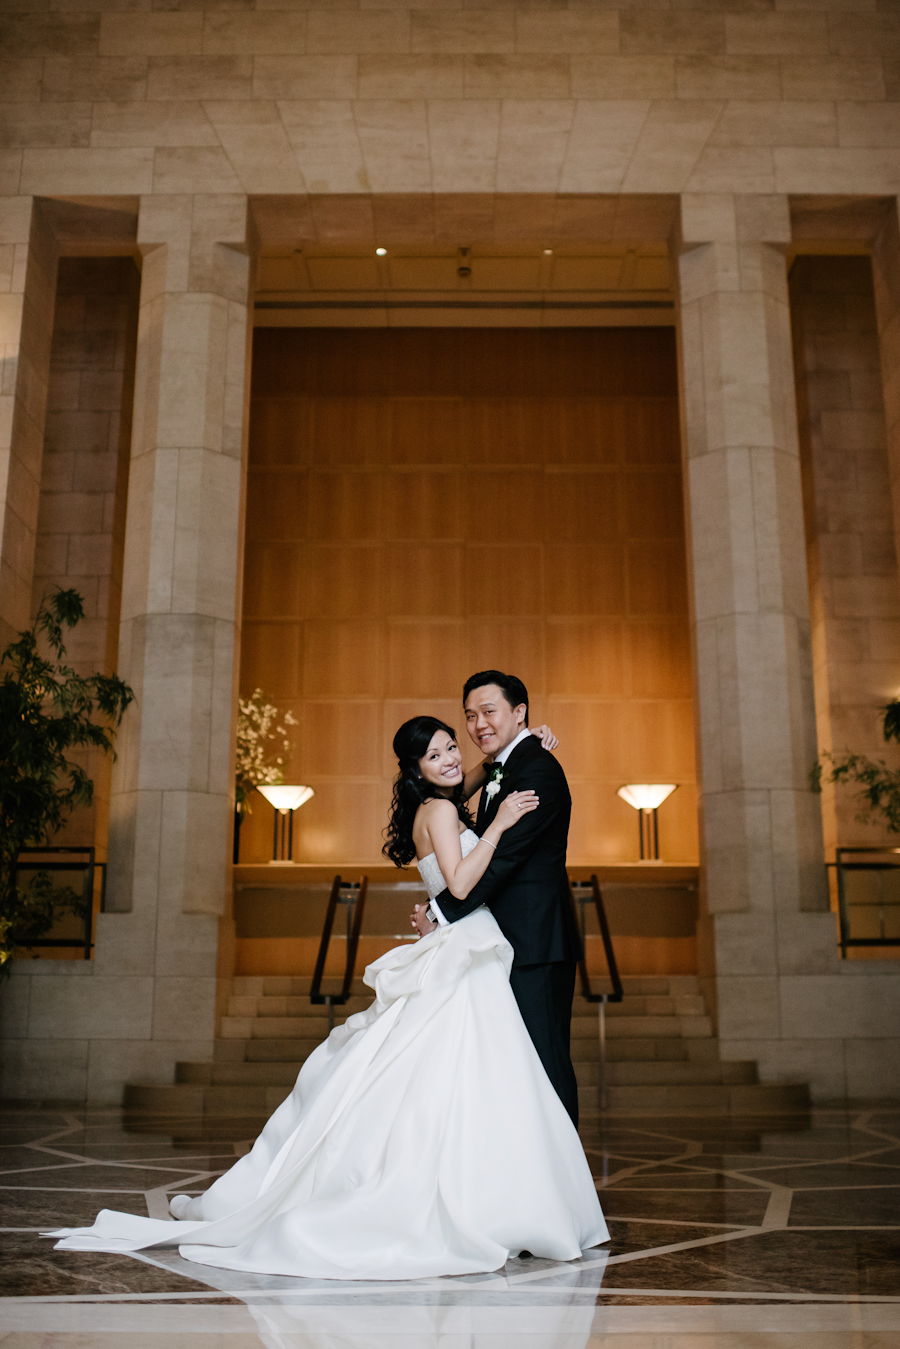 four seasons hotel wedding ang weddings and events brian hatton photography-15.jpg